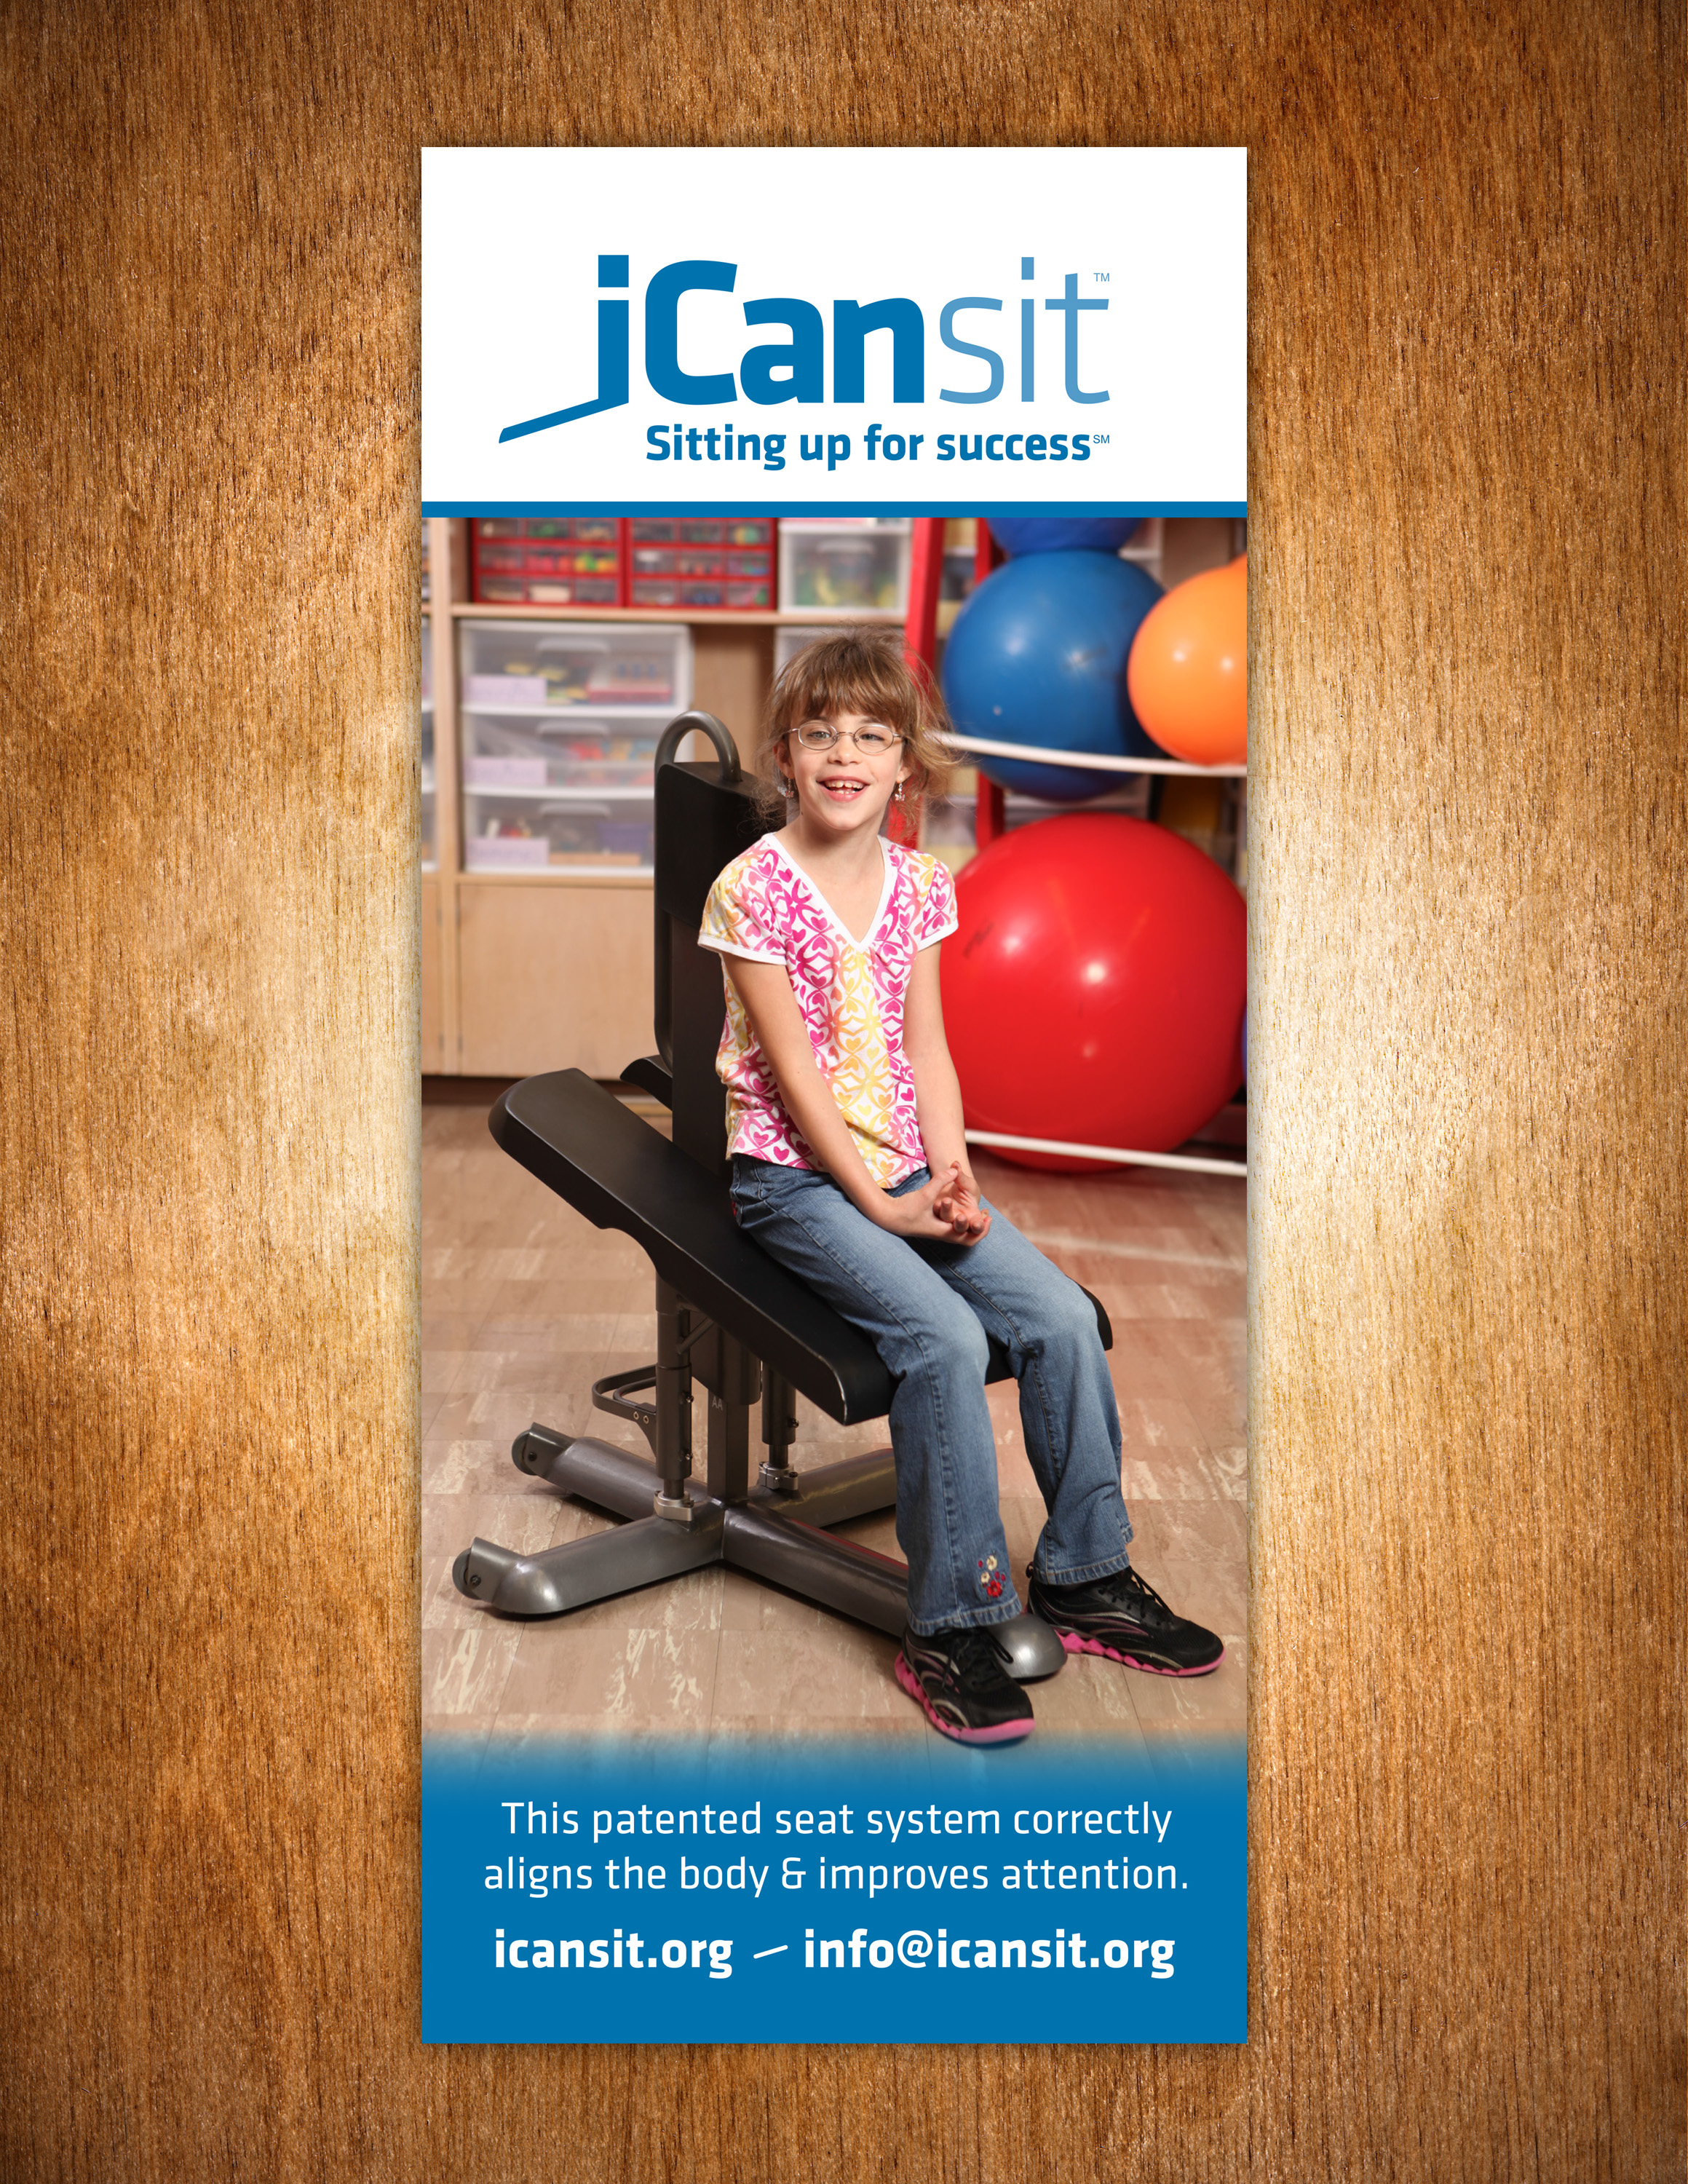 iCanSit